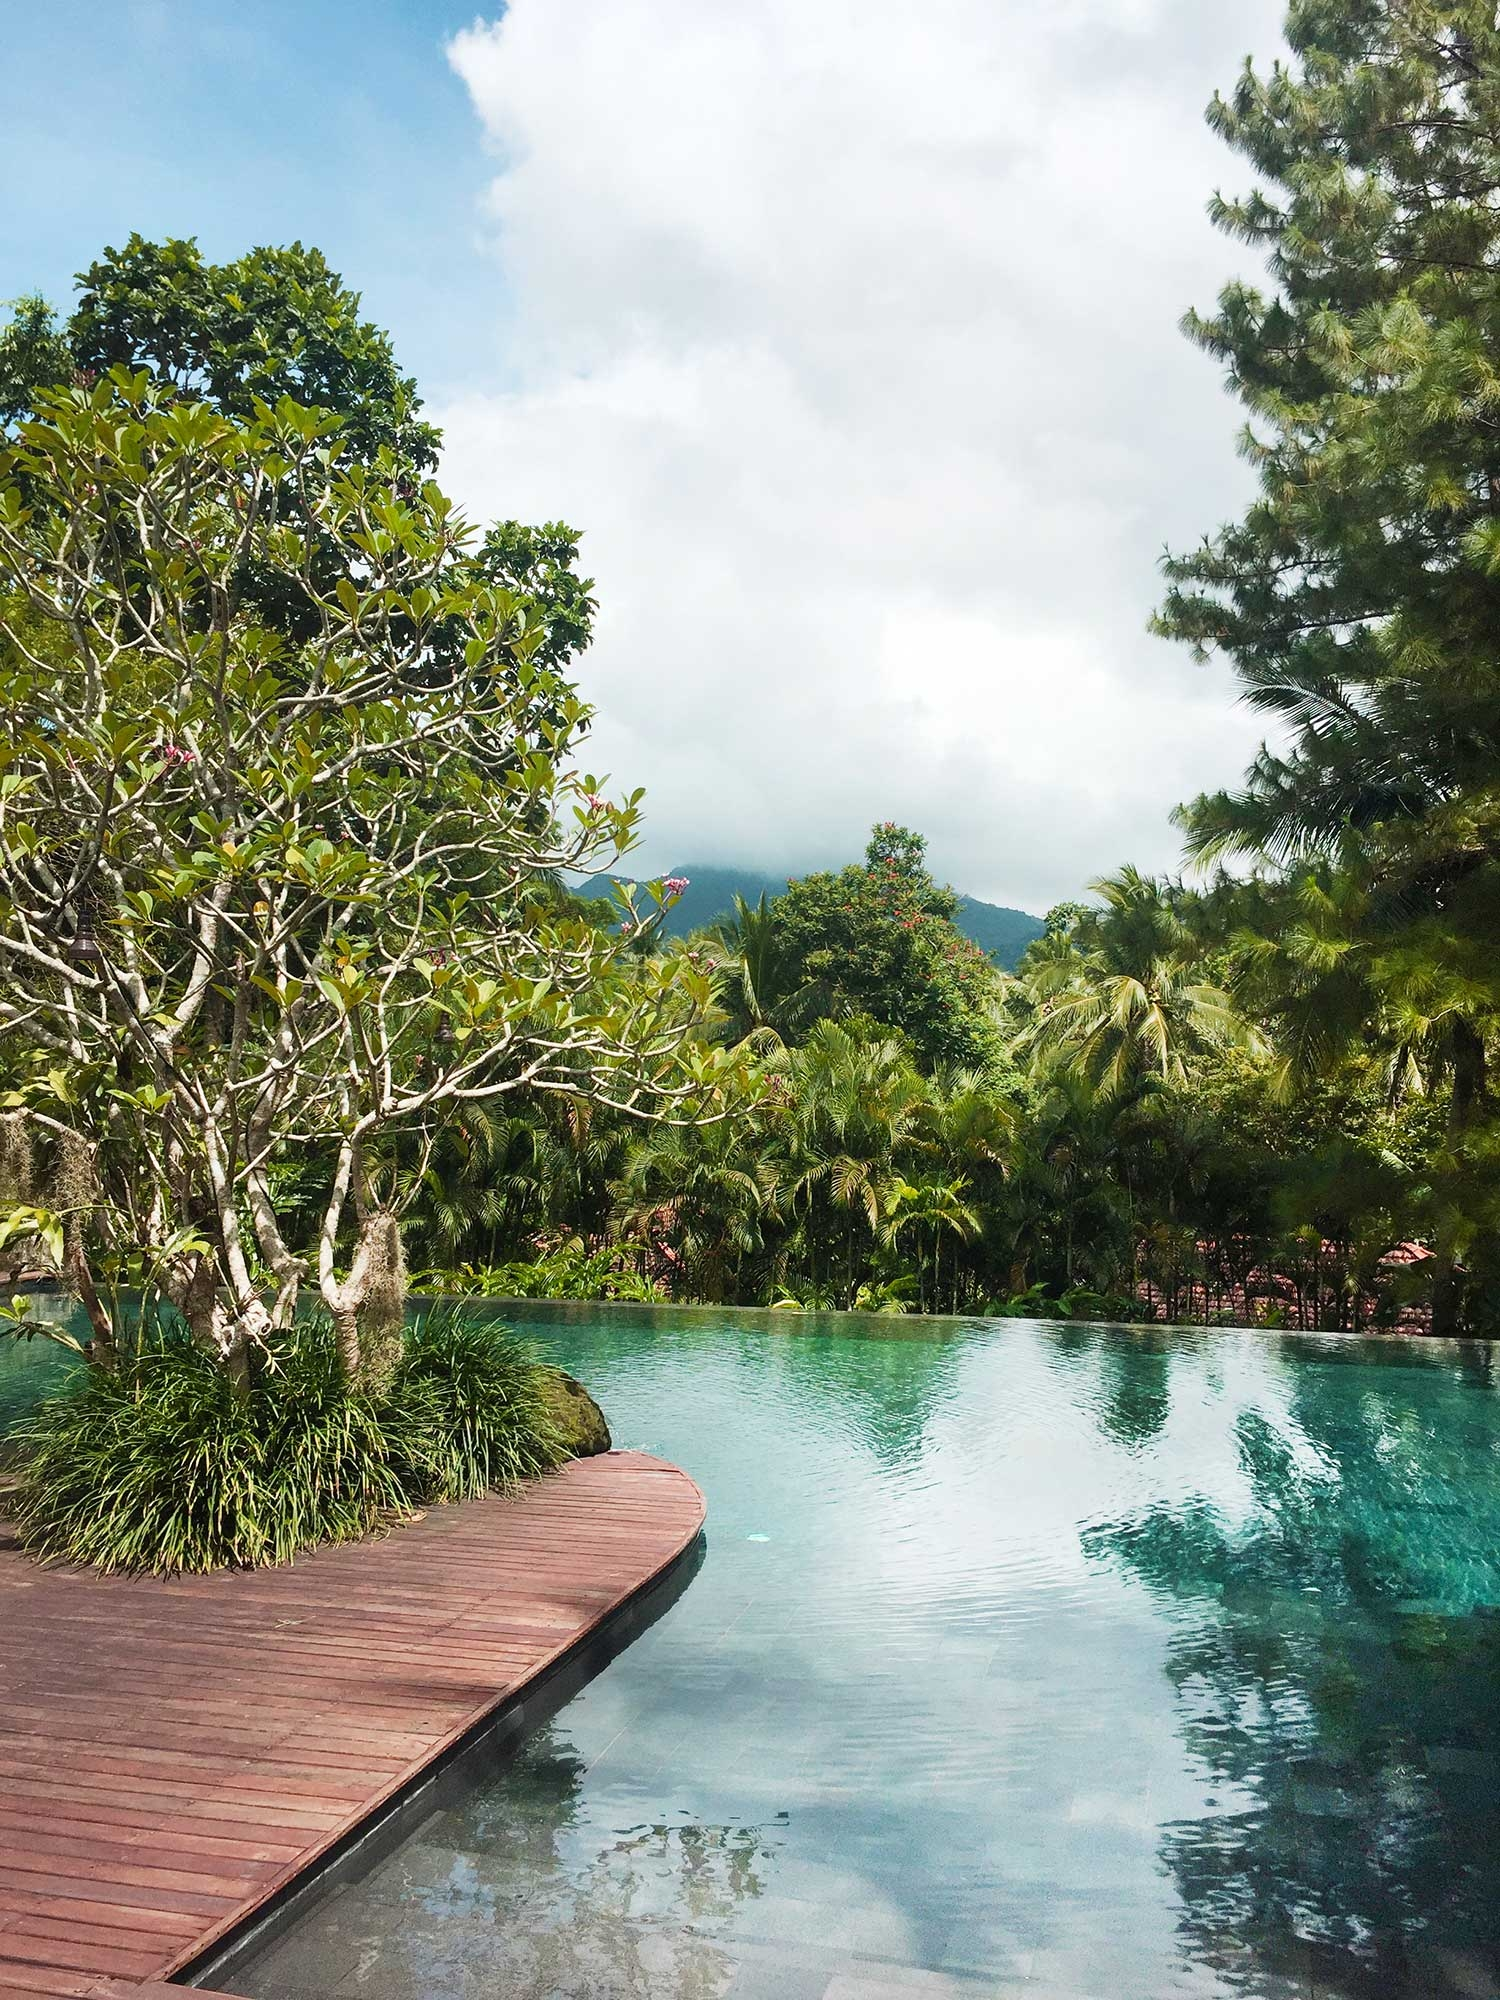 An ancient frangipani tree sits beside a large pool overlooking the nearby jungle and mountains